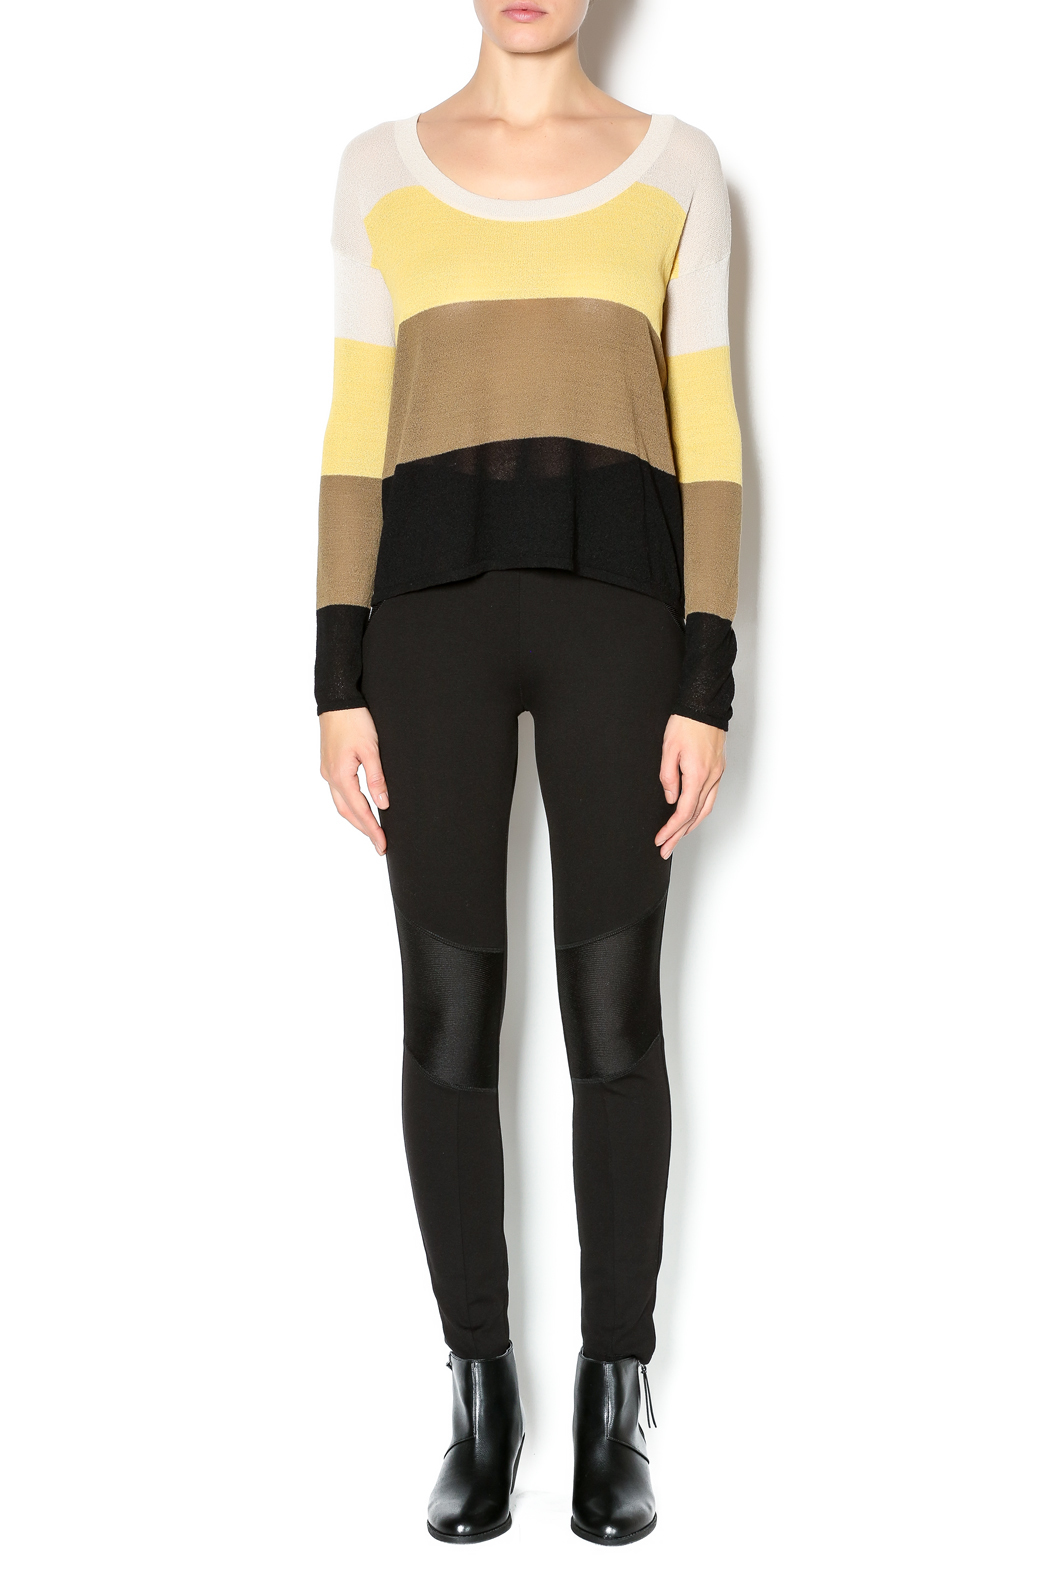 Kensie Striped Lightweight Sweater - Front Full Image